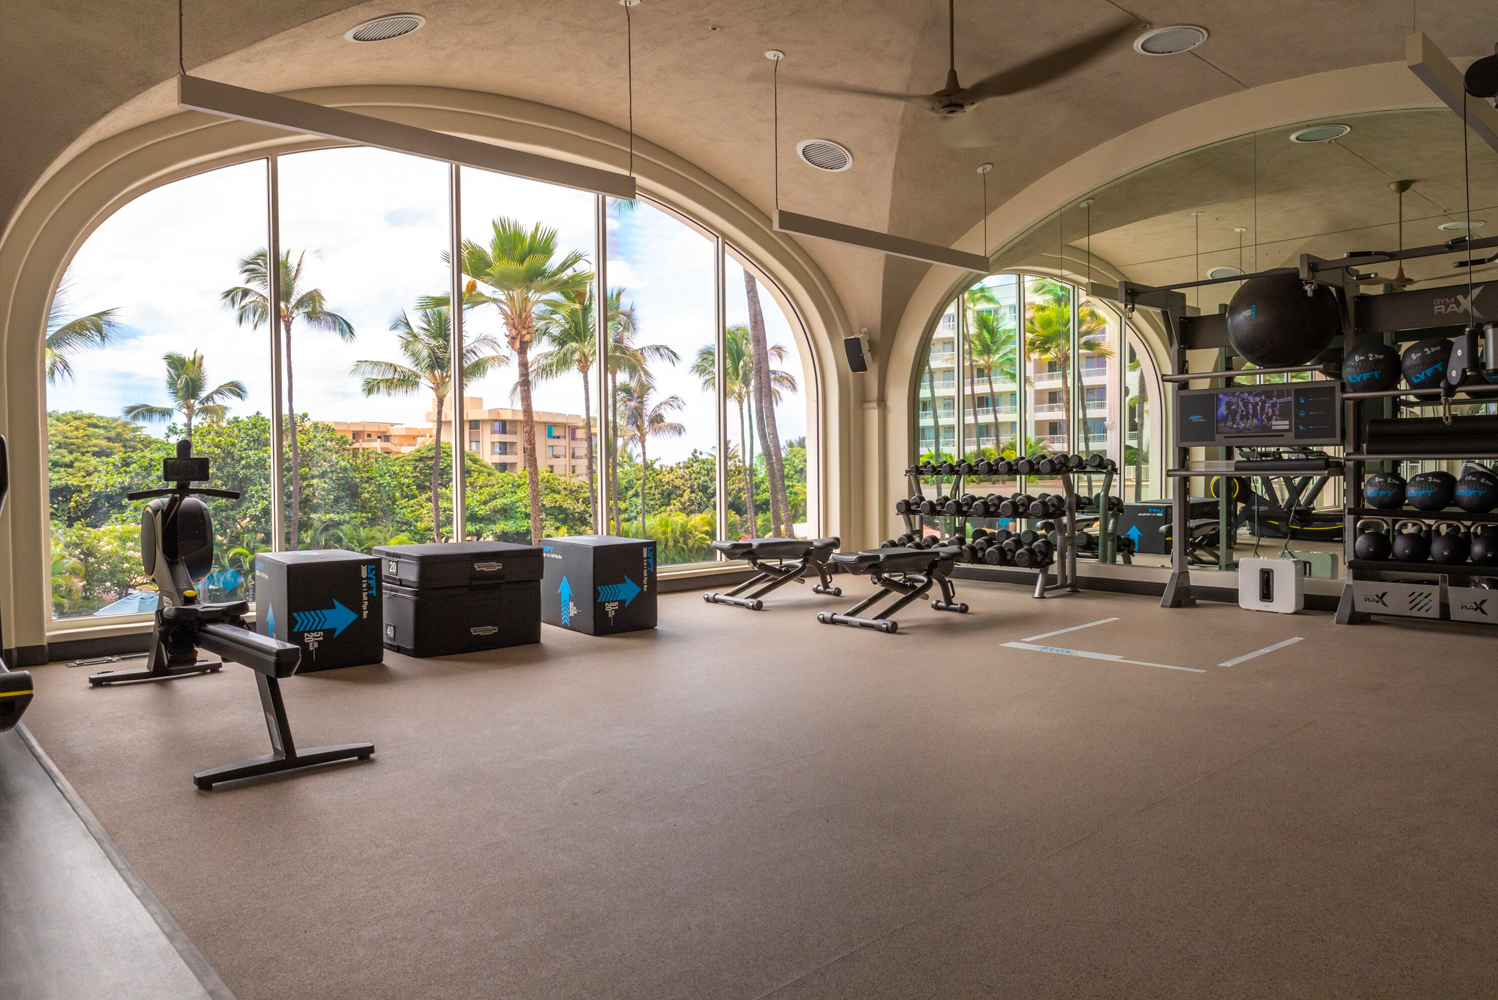 The brand new fitness center has an expansive workout space with floor-to-ceiling windows and panoramic views extending from the iconic architecture to the Pacific Ocean.